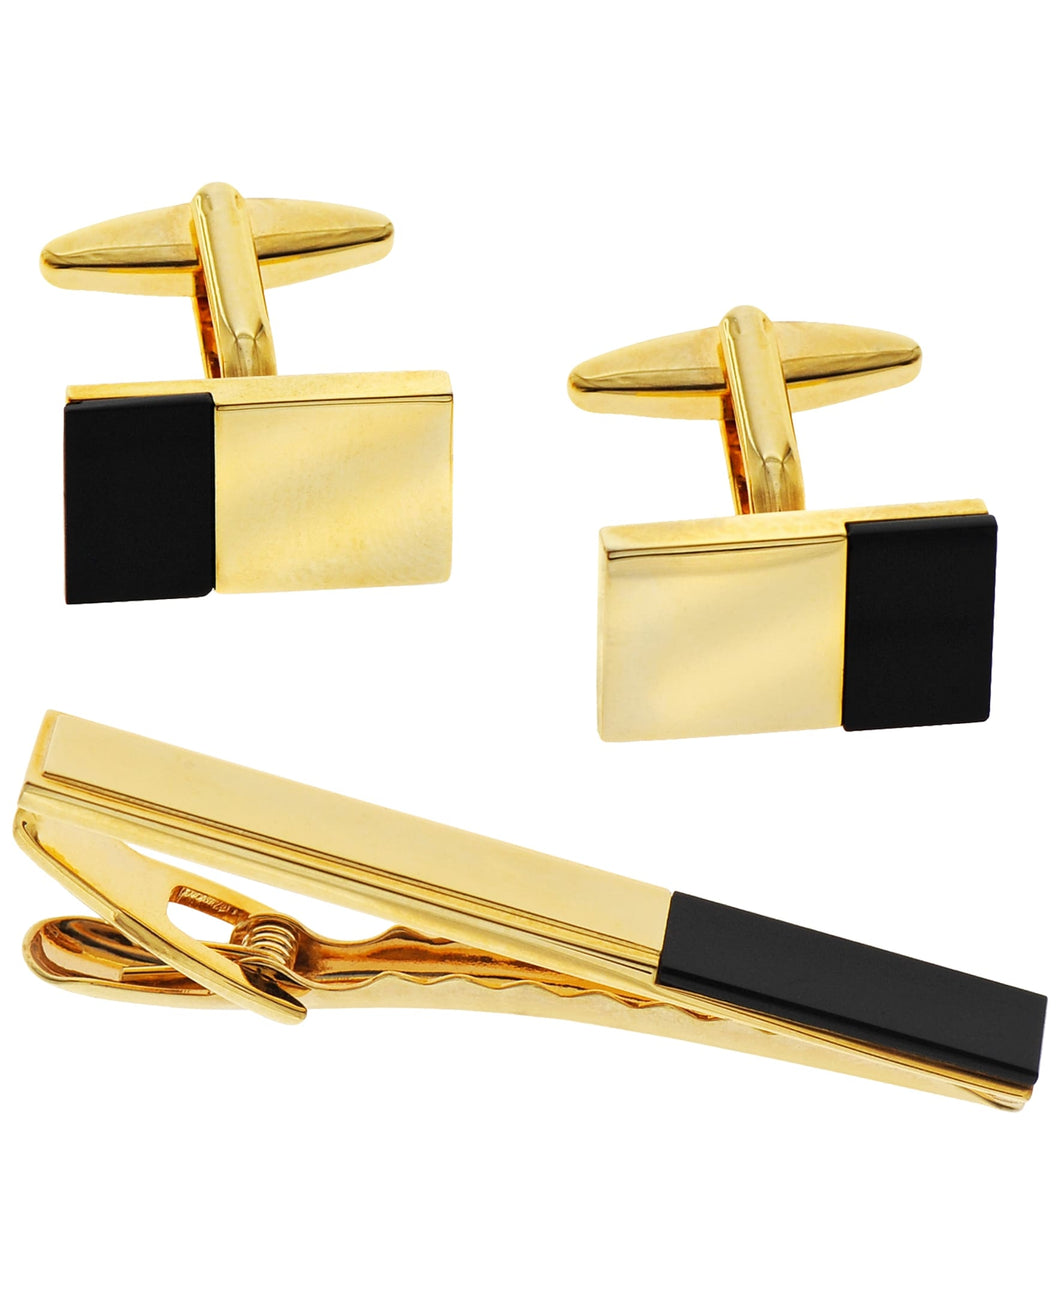 Sutton Gold-Tone Stainless Steel and Black Cufflinks and Tie Clip Set